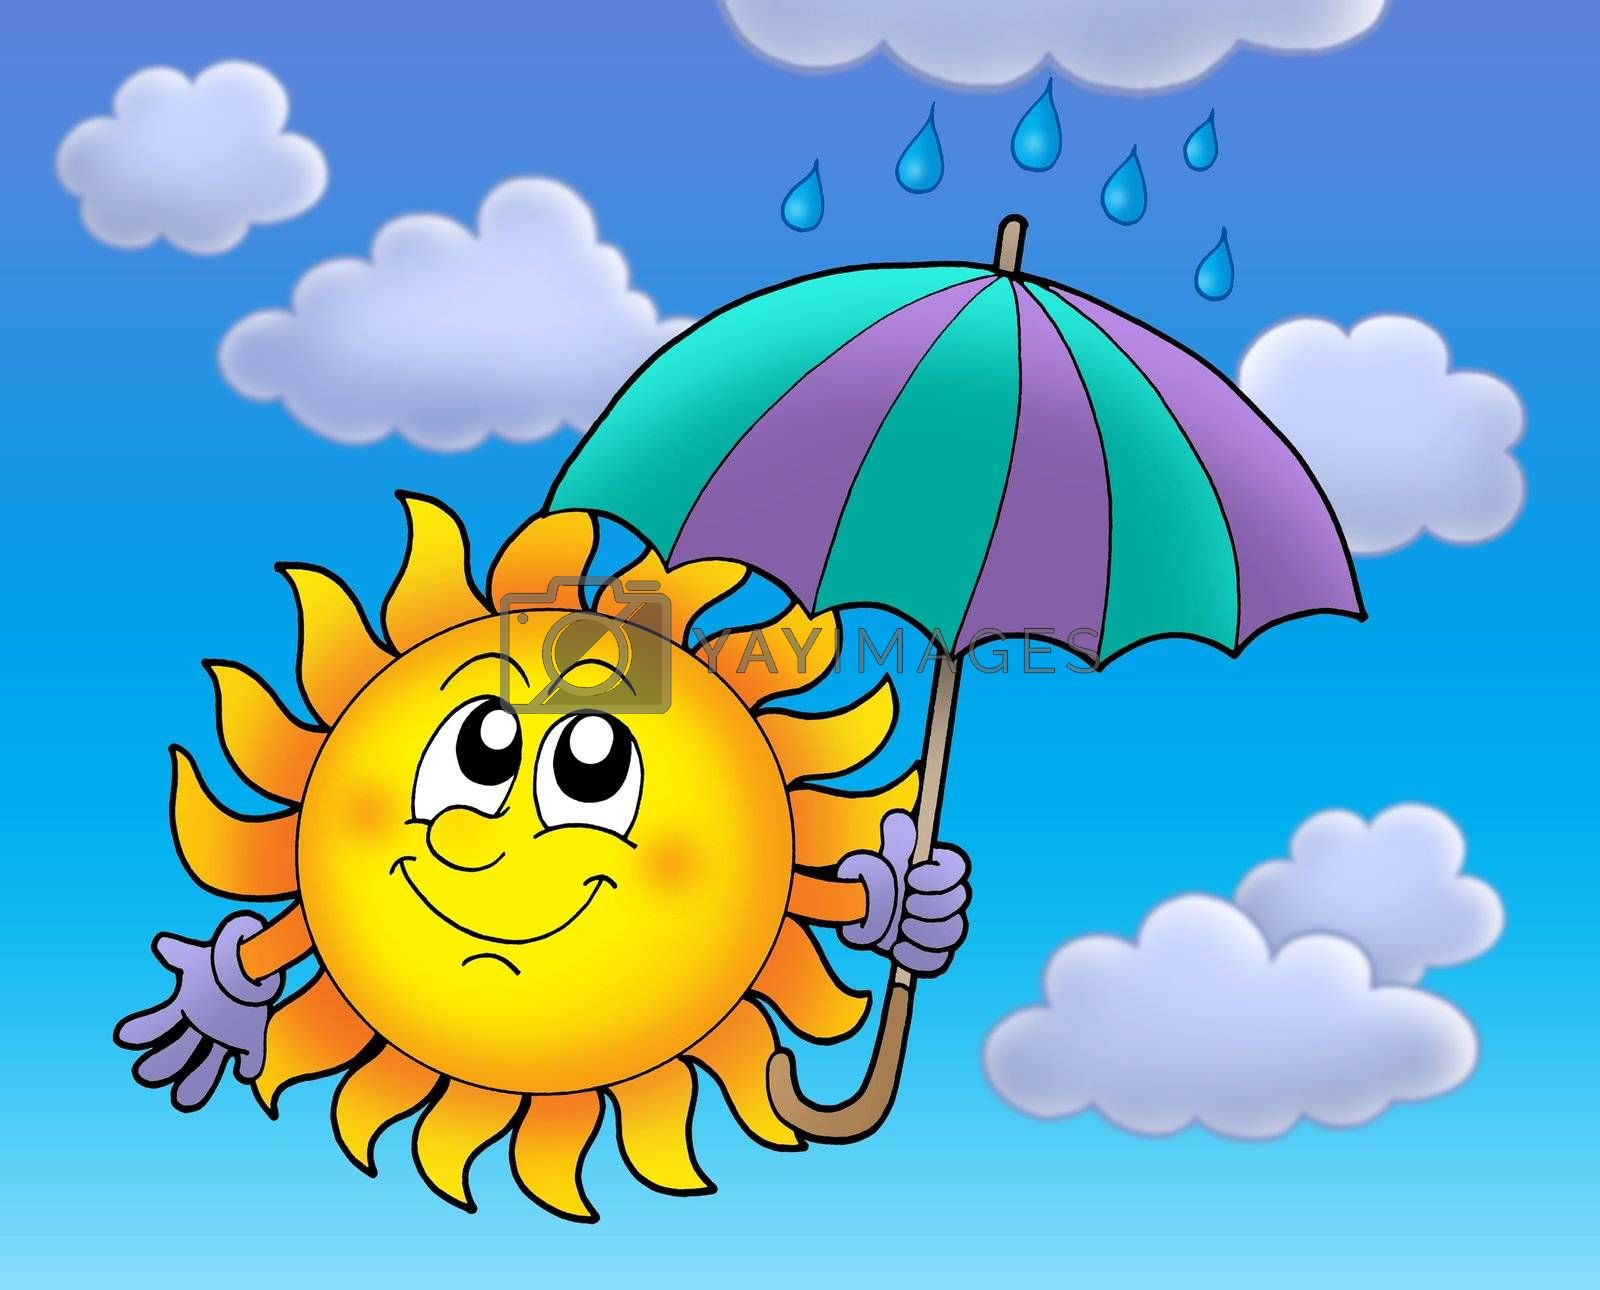 Sun with umbrella on cloudy sky - color illustration.